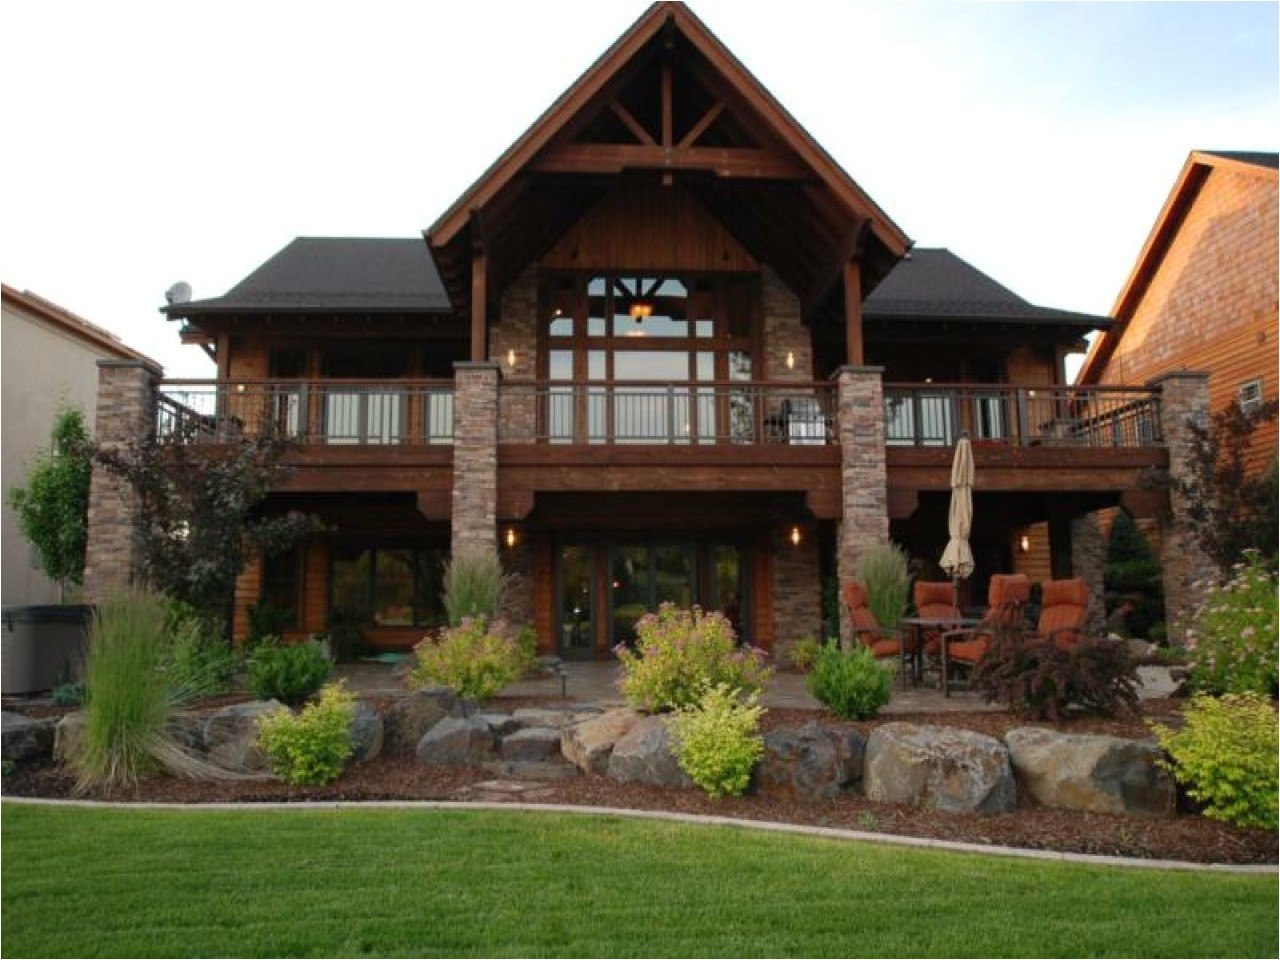 Home Plans with Finished Walkout Basement Finished Walkout Basement House Plans House Plans with